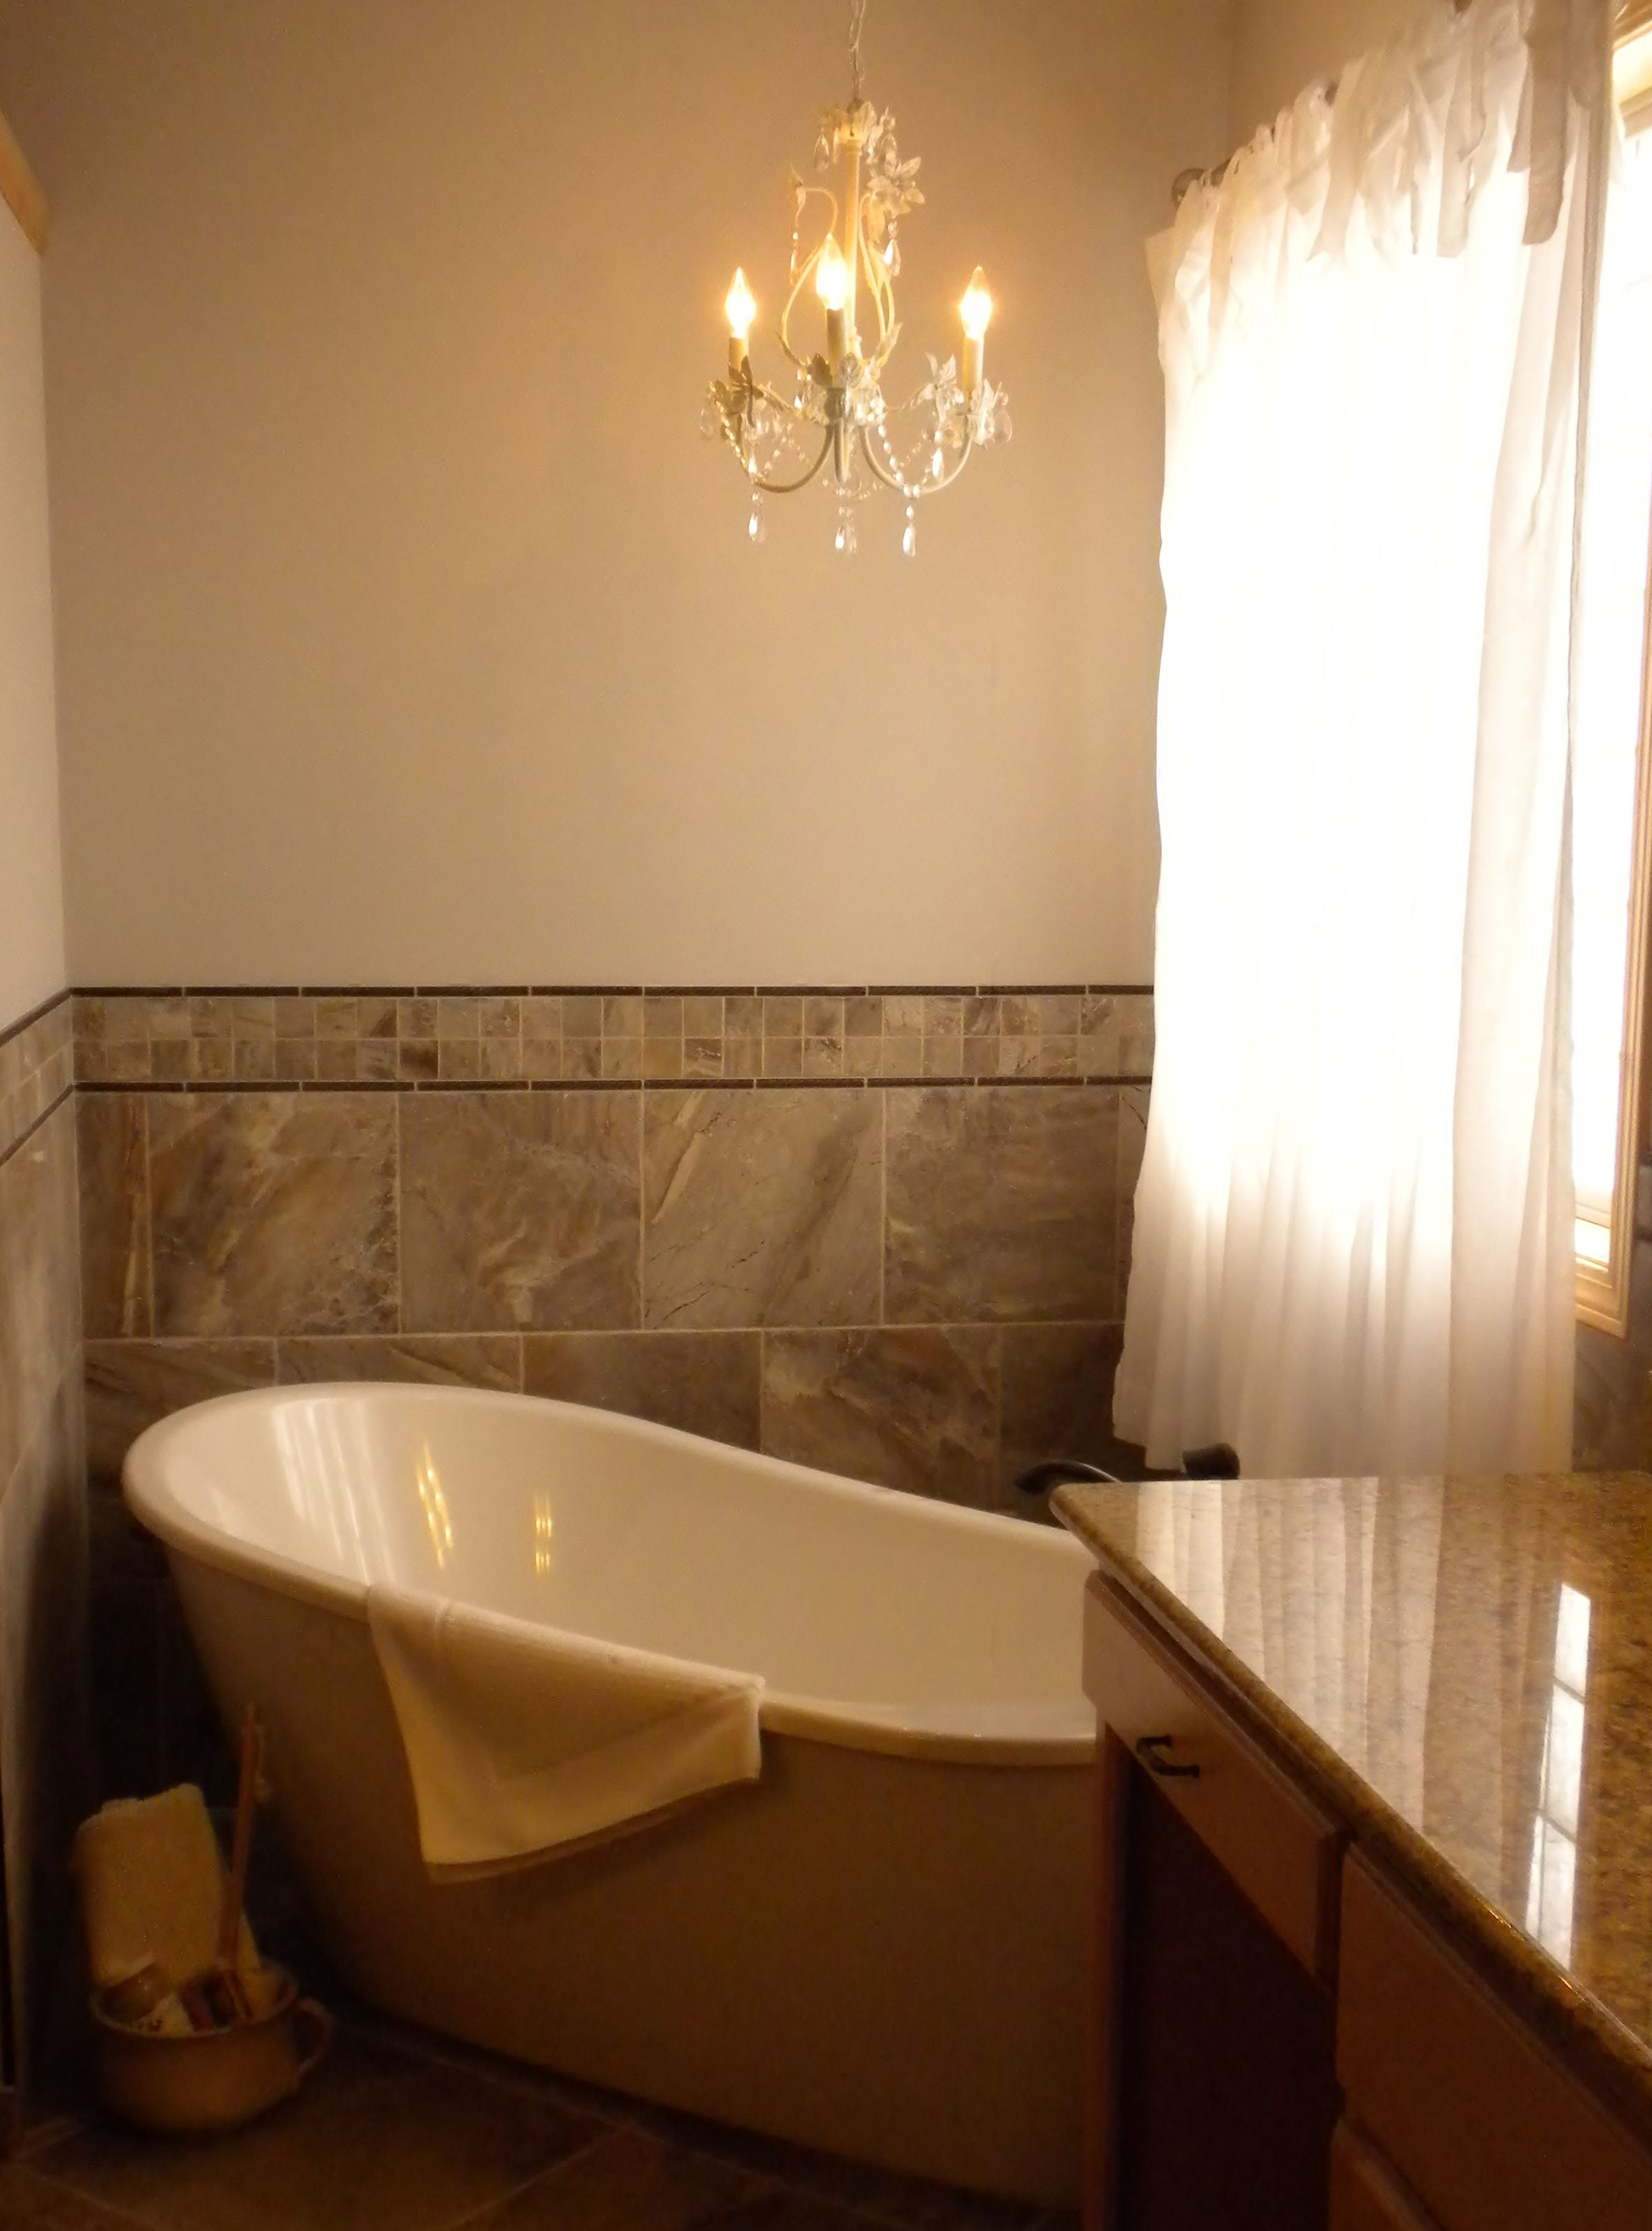 These homeowners chose to replace a corner jetted tub with this ...